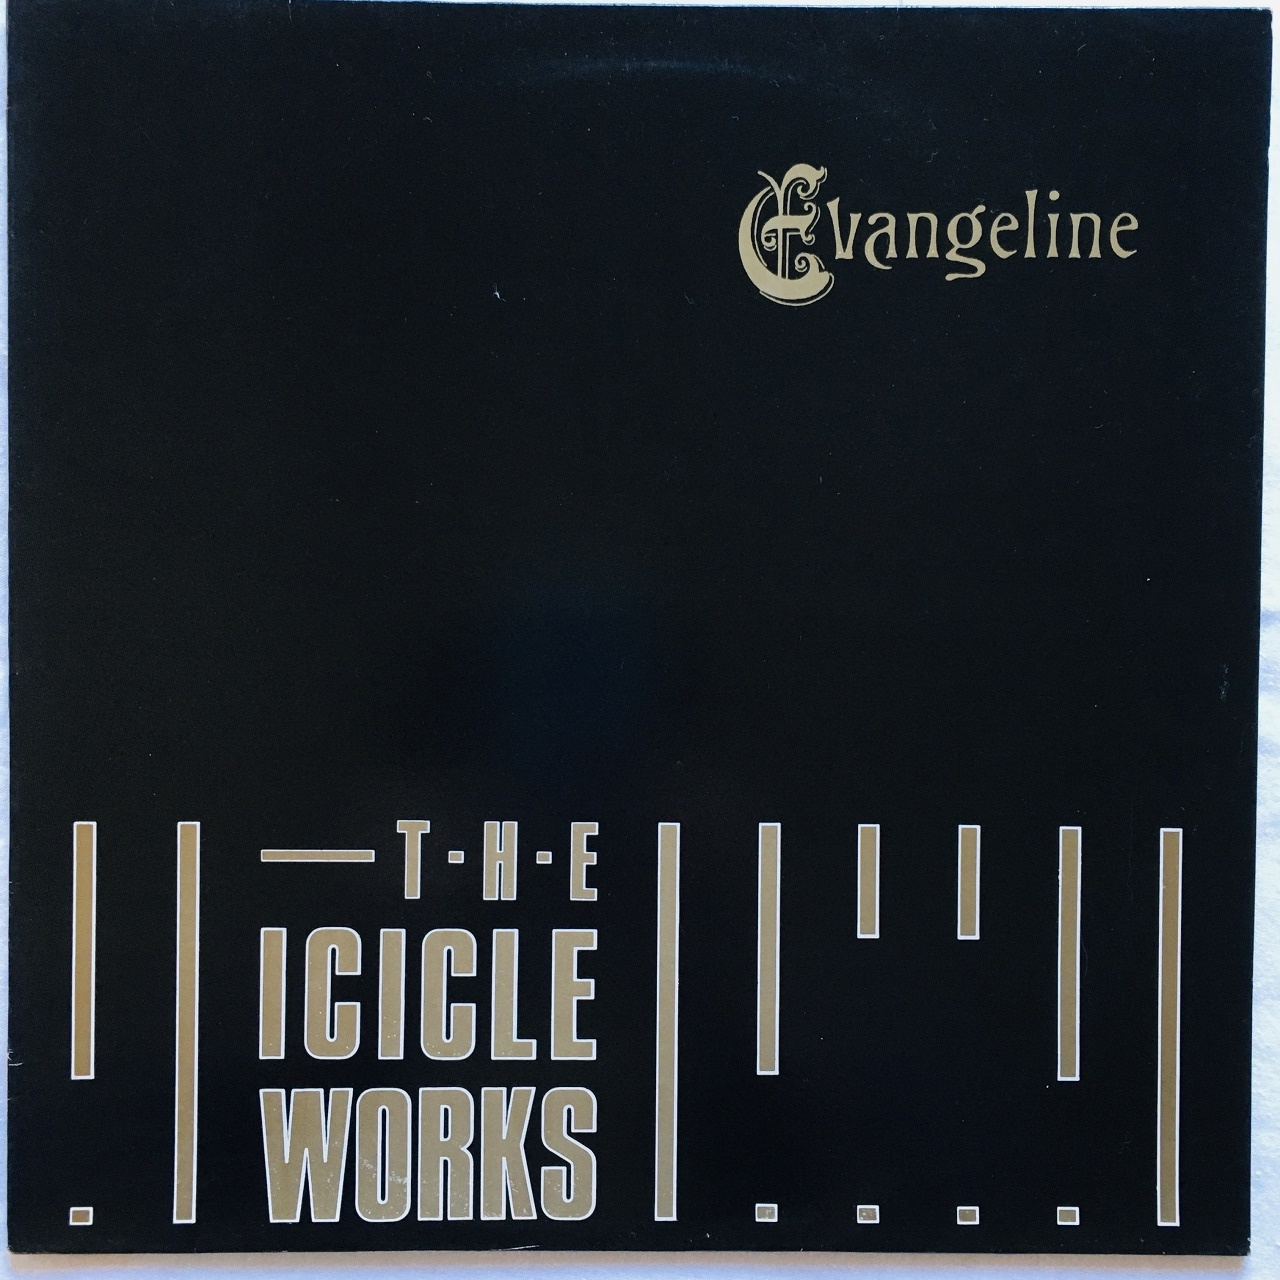 【12inch・英盤】The Icicle Works / Evangeline